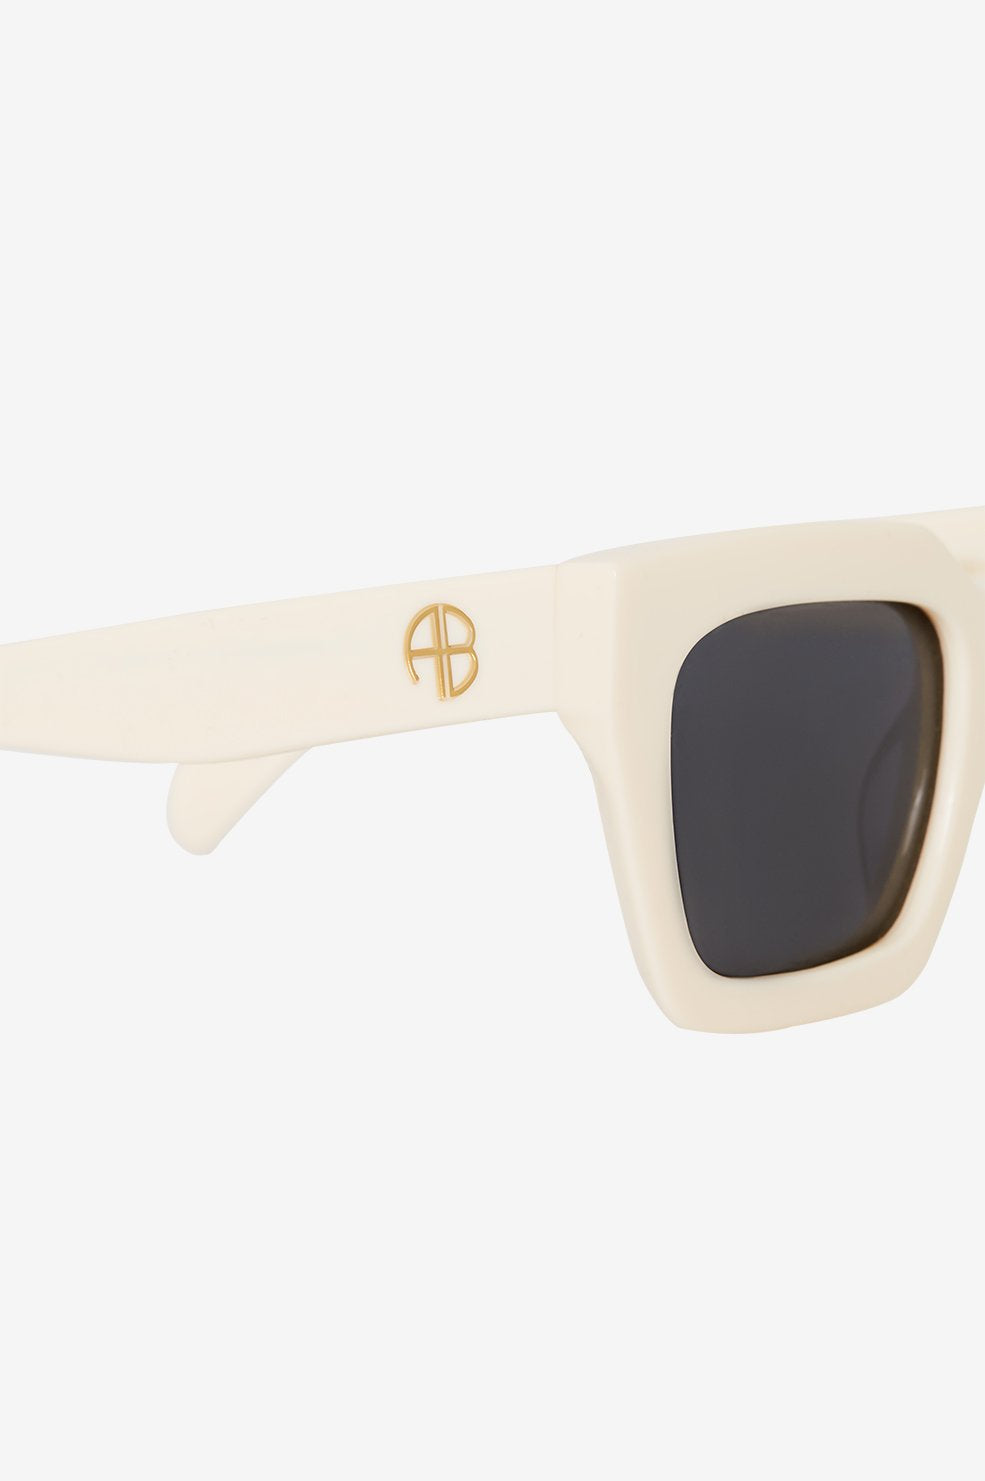 ANINE BING Indio Sunglasses - Bone